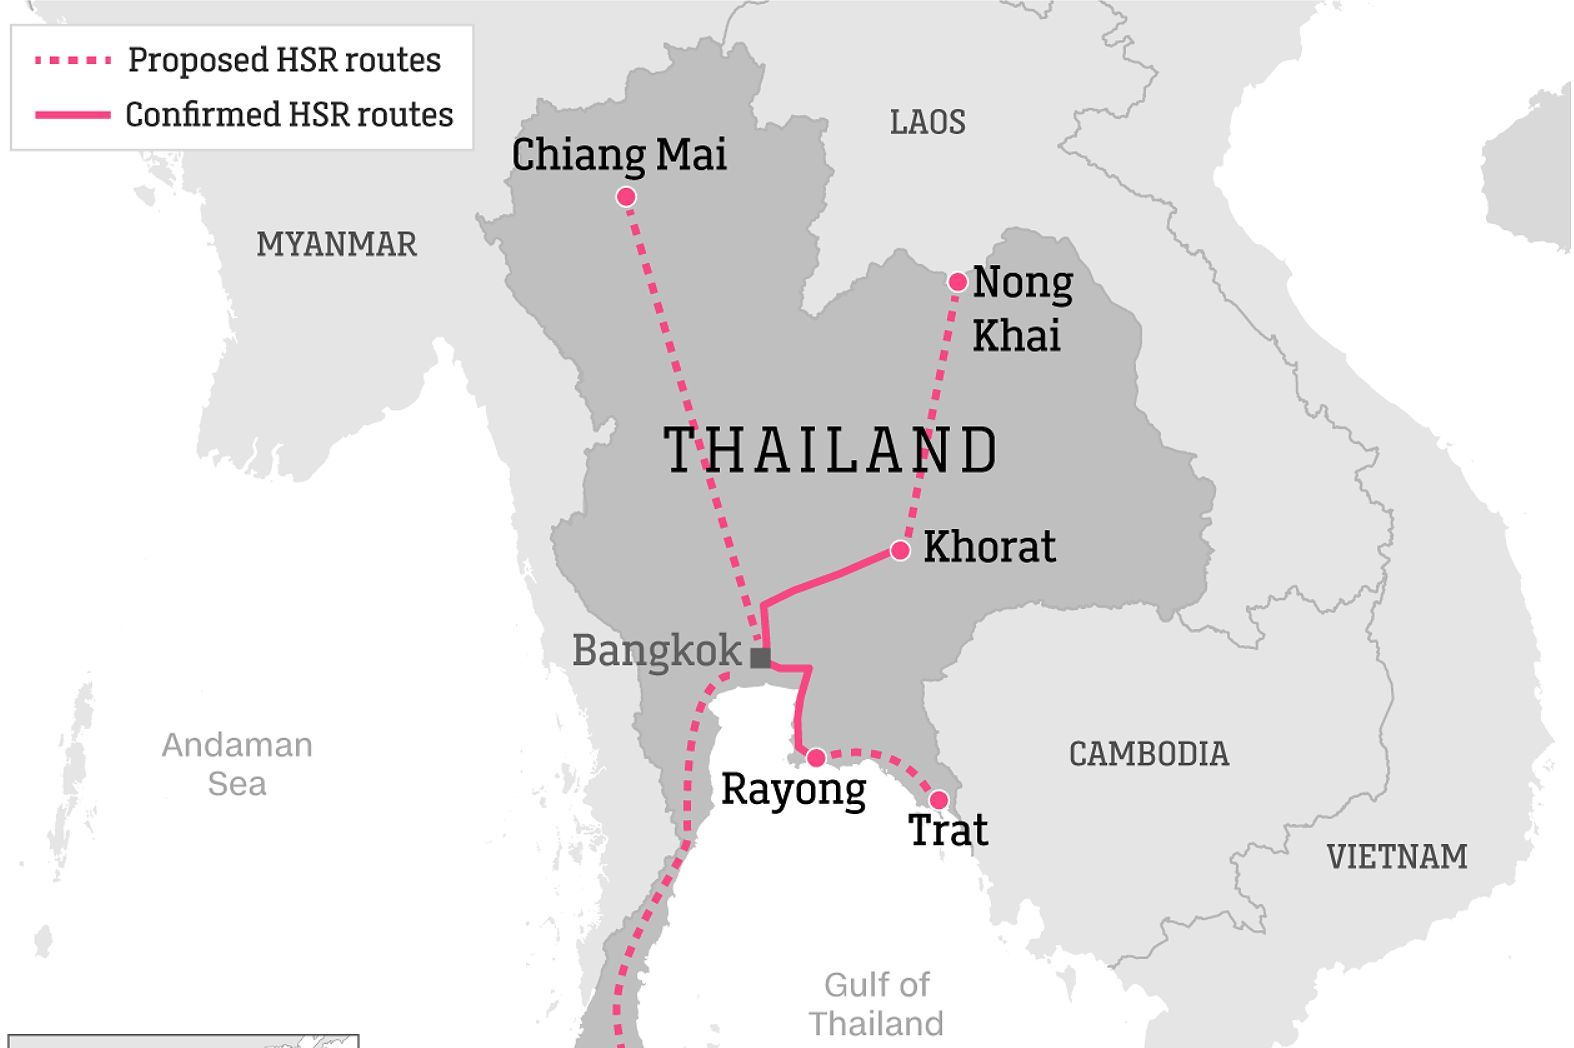 """Thailand's high speed rail future """"not the right fit"""" 